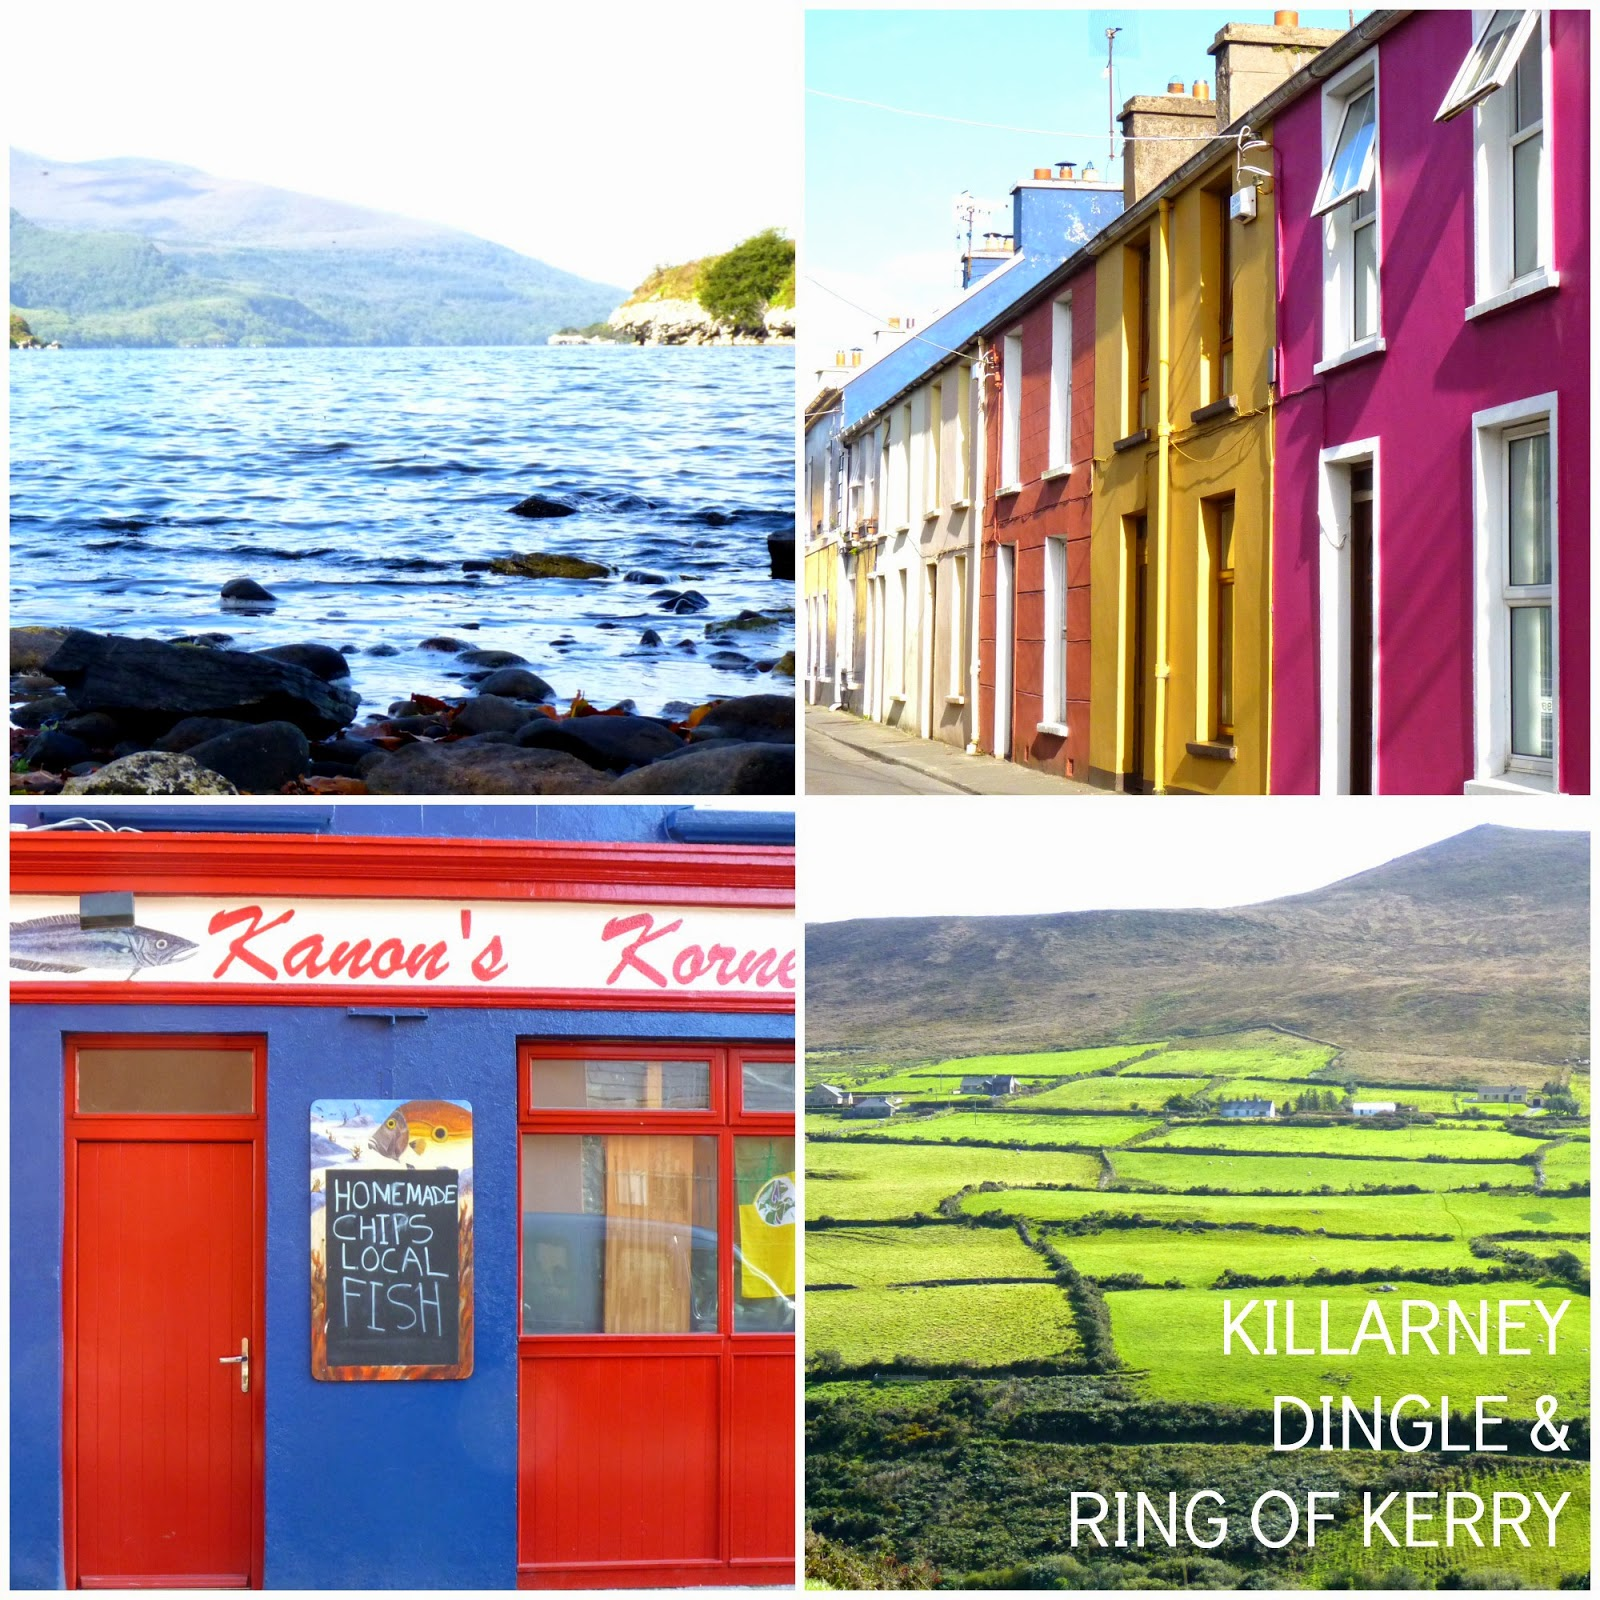 Killarney - Dingle - Ring of Kerry Irlanda